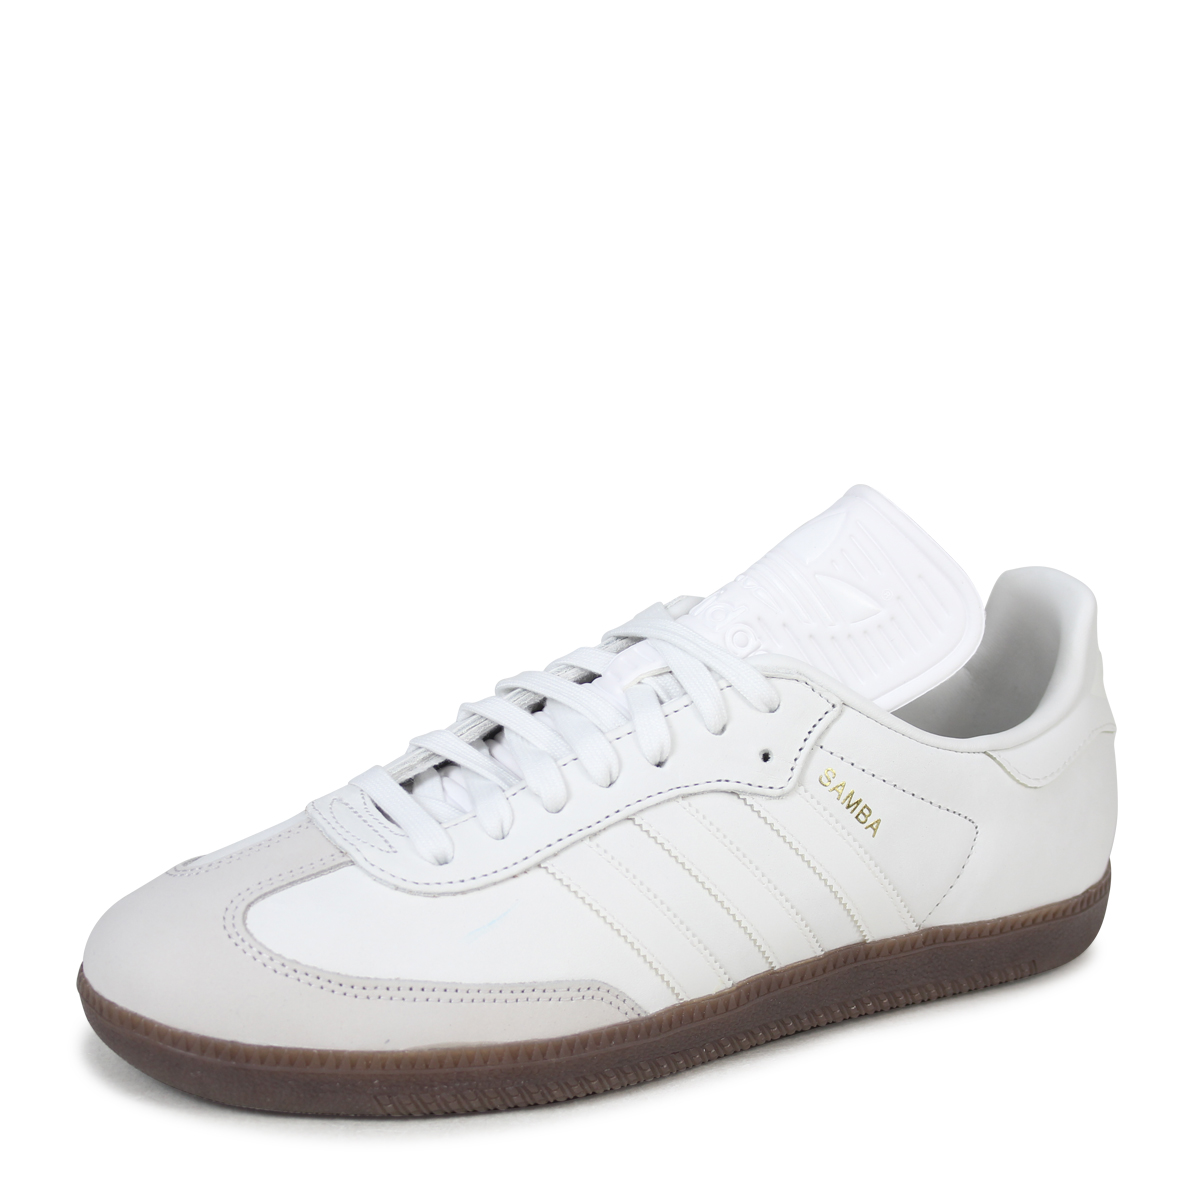 d2cd3d7390b adidas Originals SAMBA CLASSIC OG Adidas samba sneakers men BZ0226 white  originals  load planned Shinnyu load in reservation product 3 20  containing   183